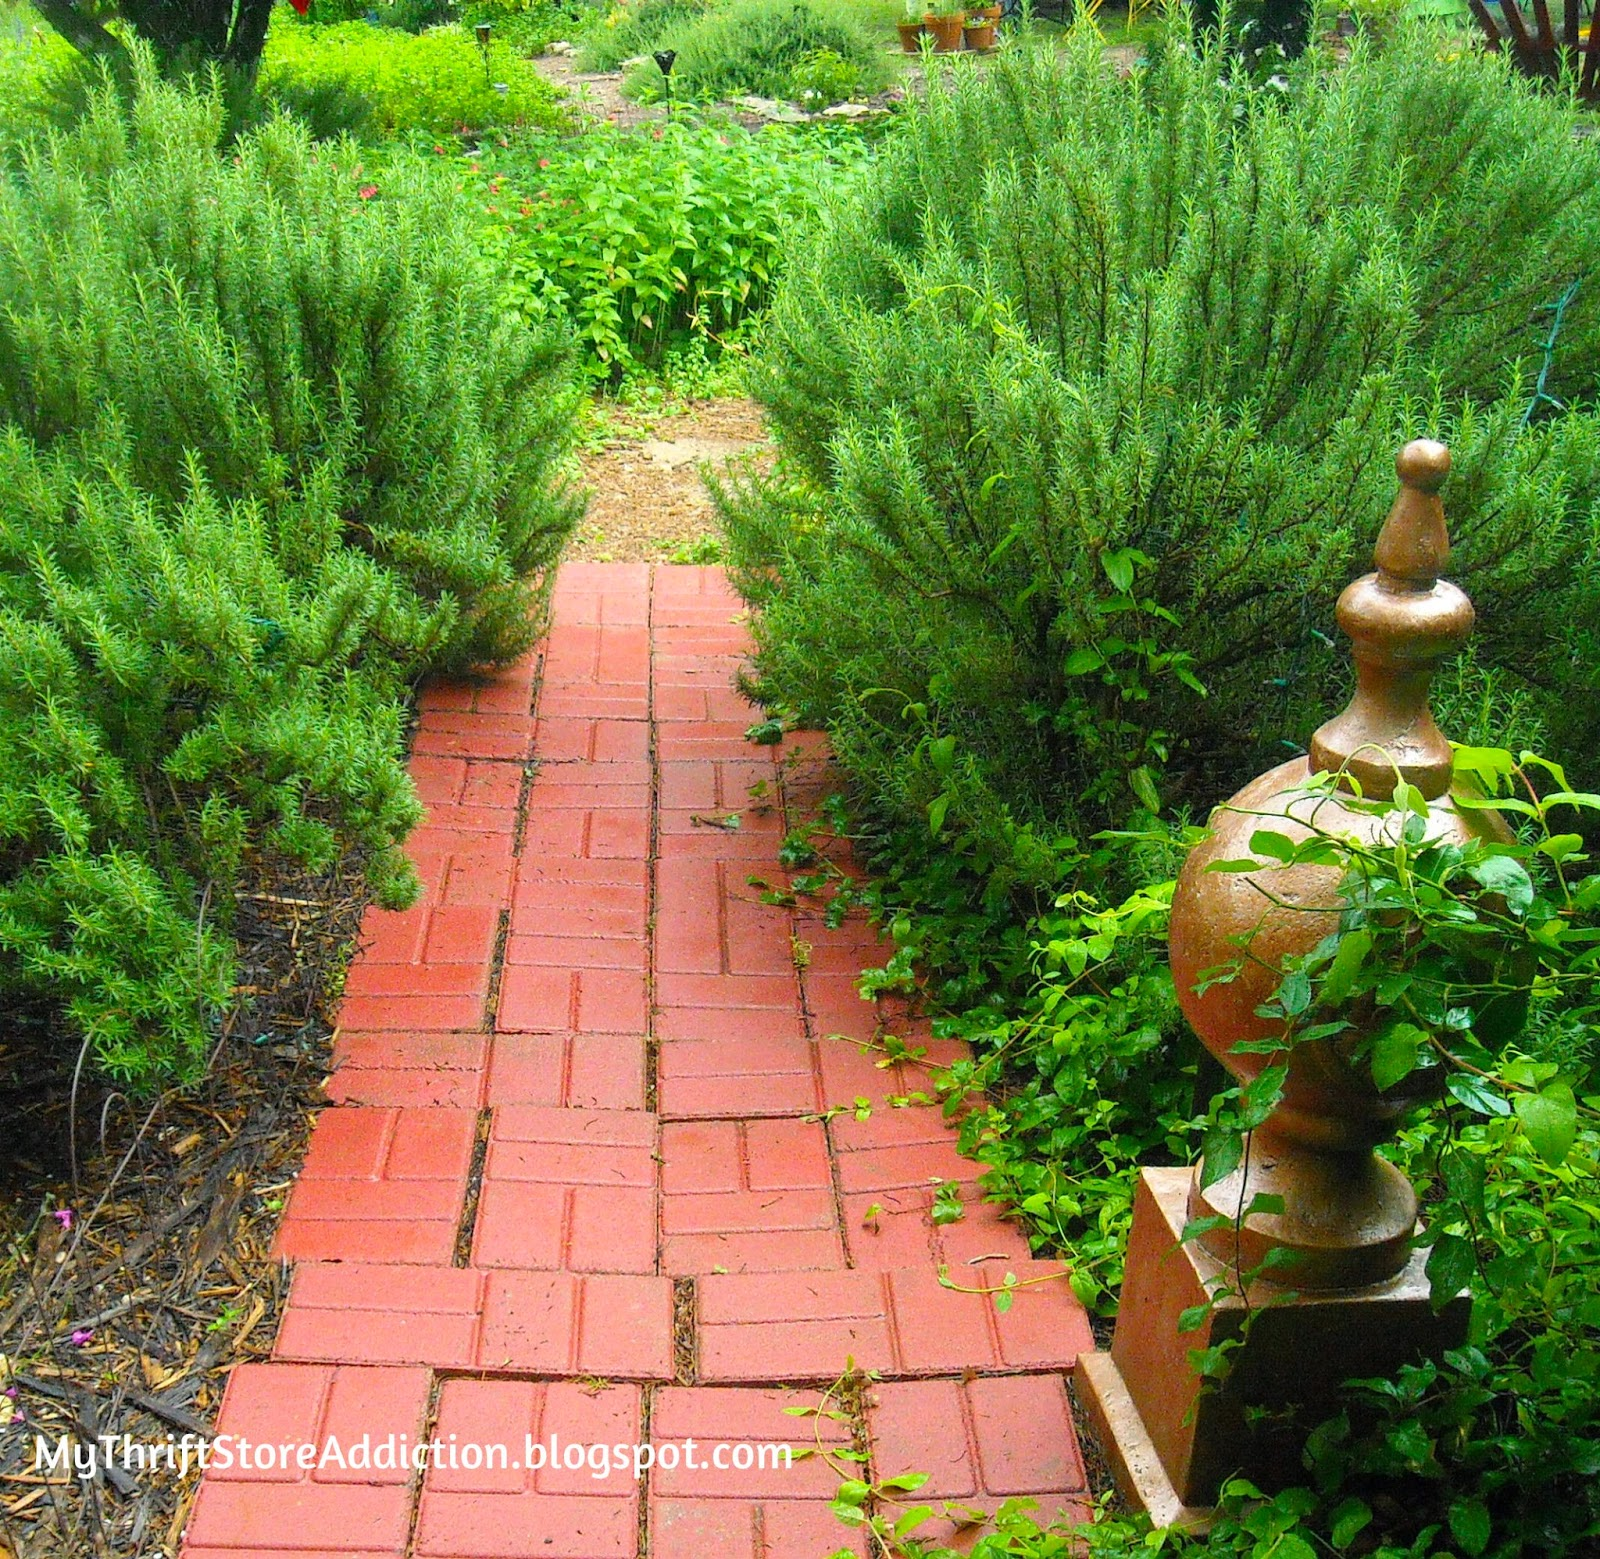 Welcome to Secret Garden: My Creative Space! mythriftstoreaddiction.blogspot.com A fragrant rosemary lined path at the garden's entrance